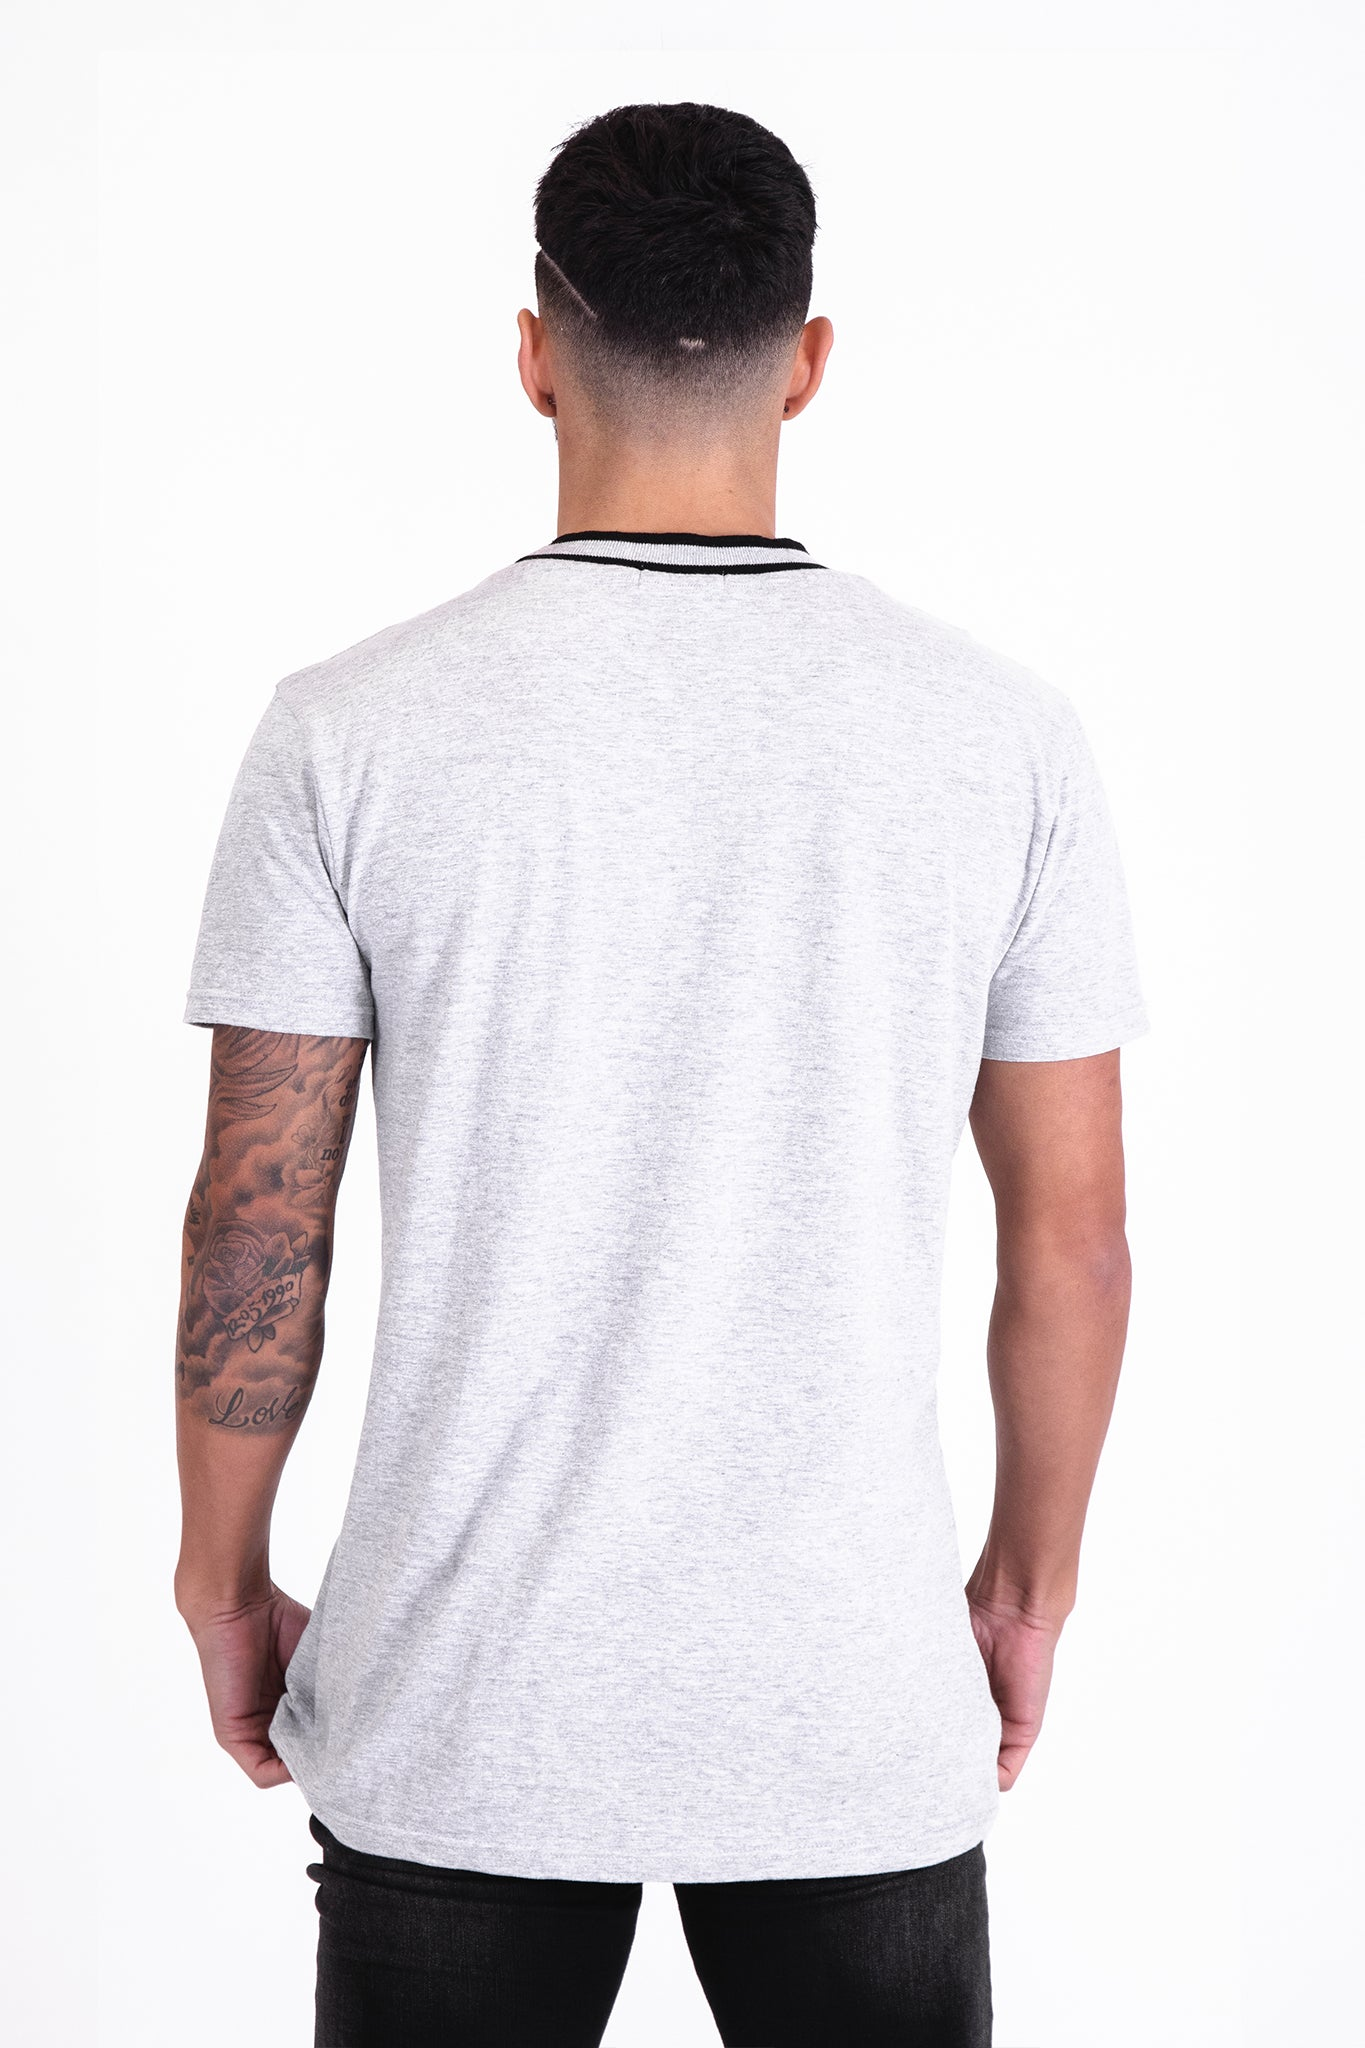 Grey Iconic Tee - Illusion Attire